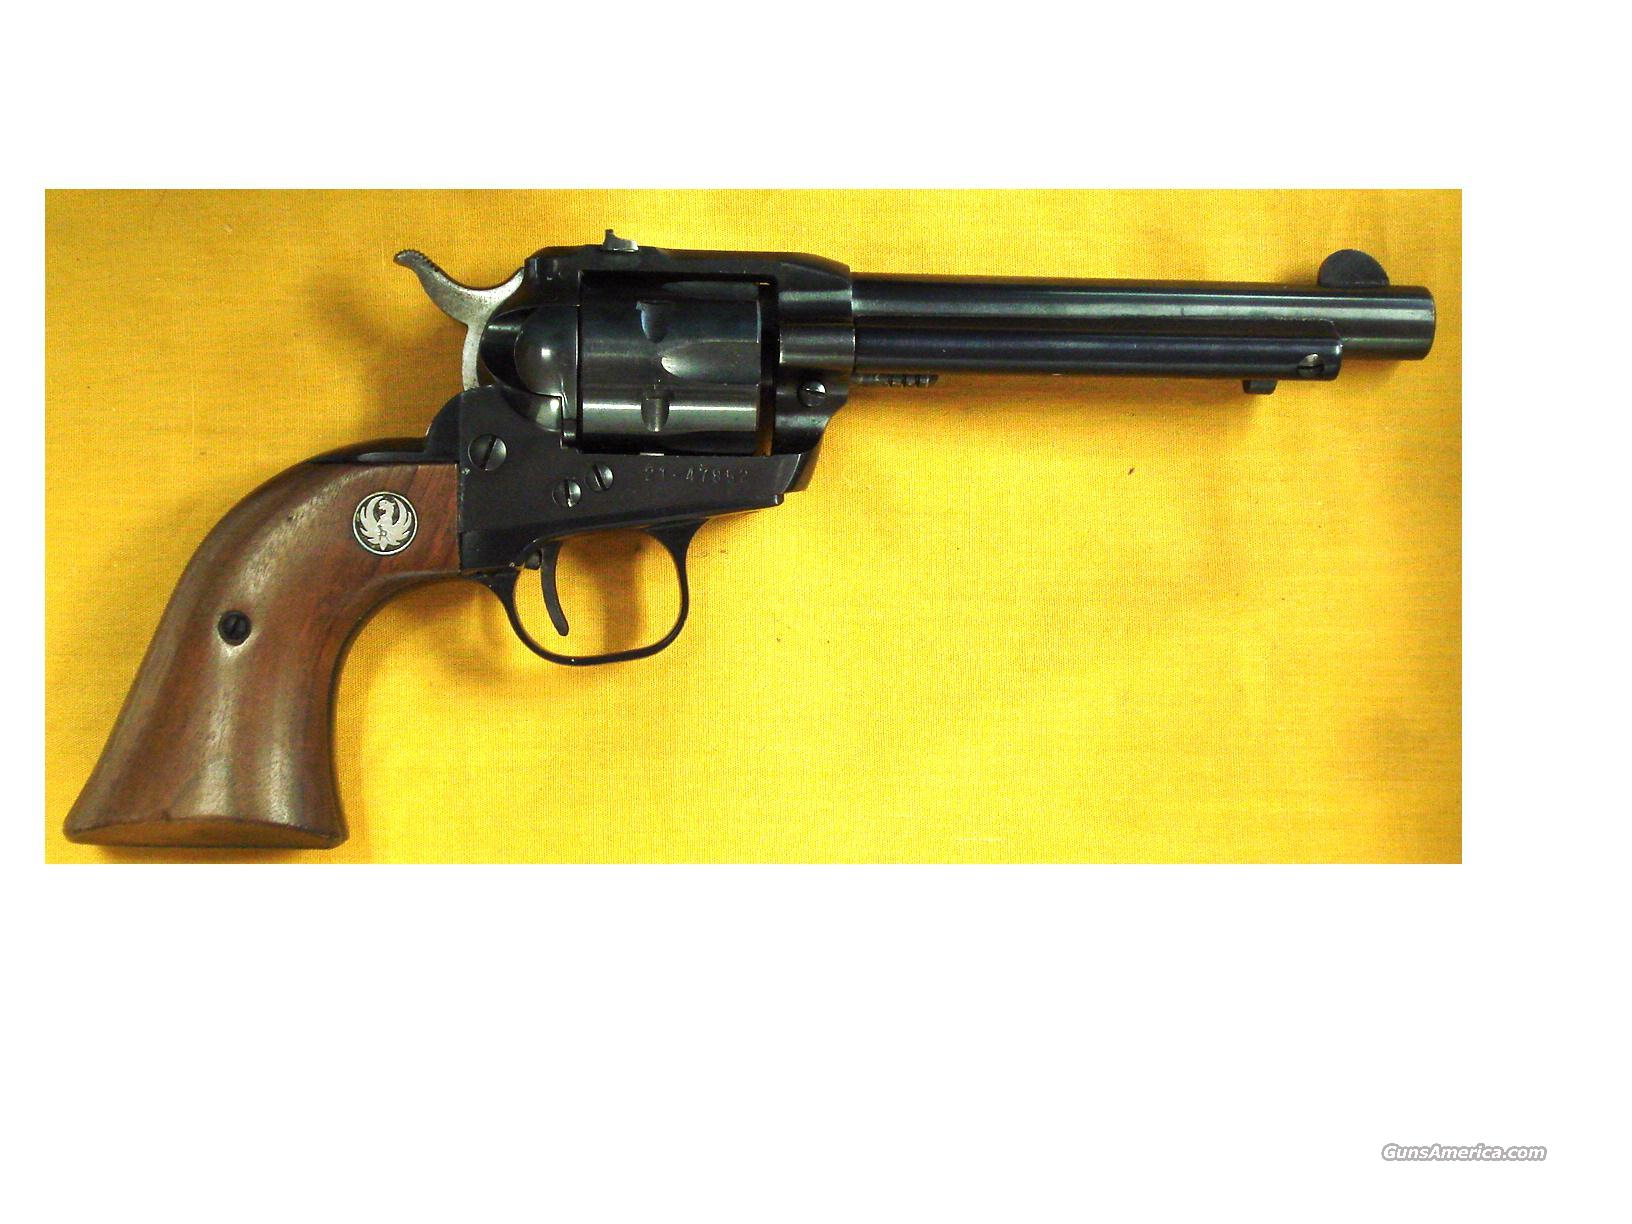 "RUGER SINGLE SIX .22 5 1/2""BBL 3 SCREW  Guns > Pistols > Ruger Single Action Revolvers > Single Six Type"